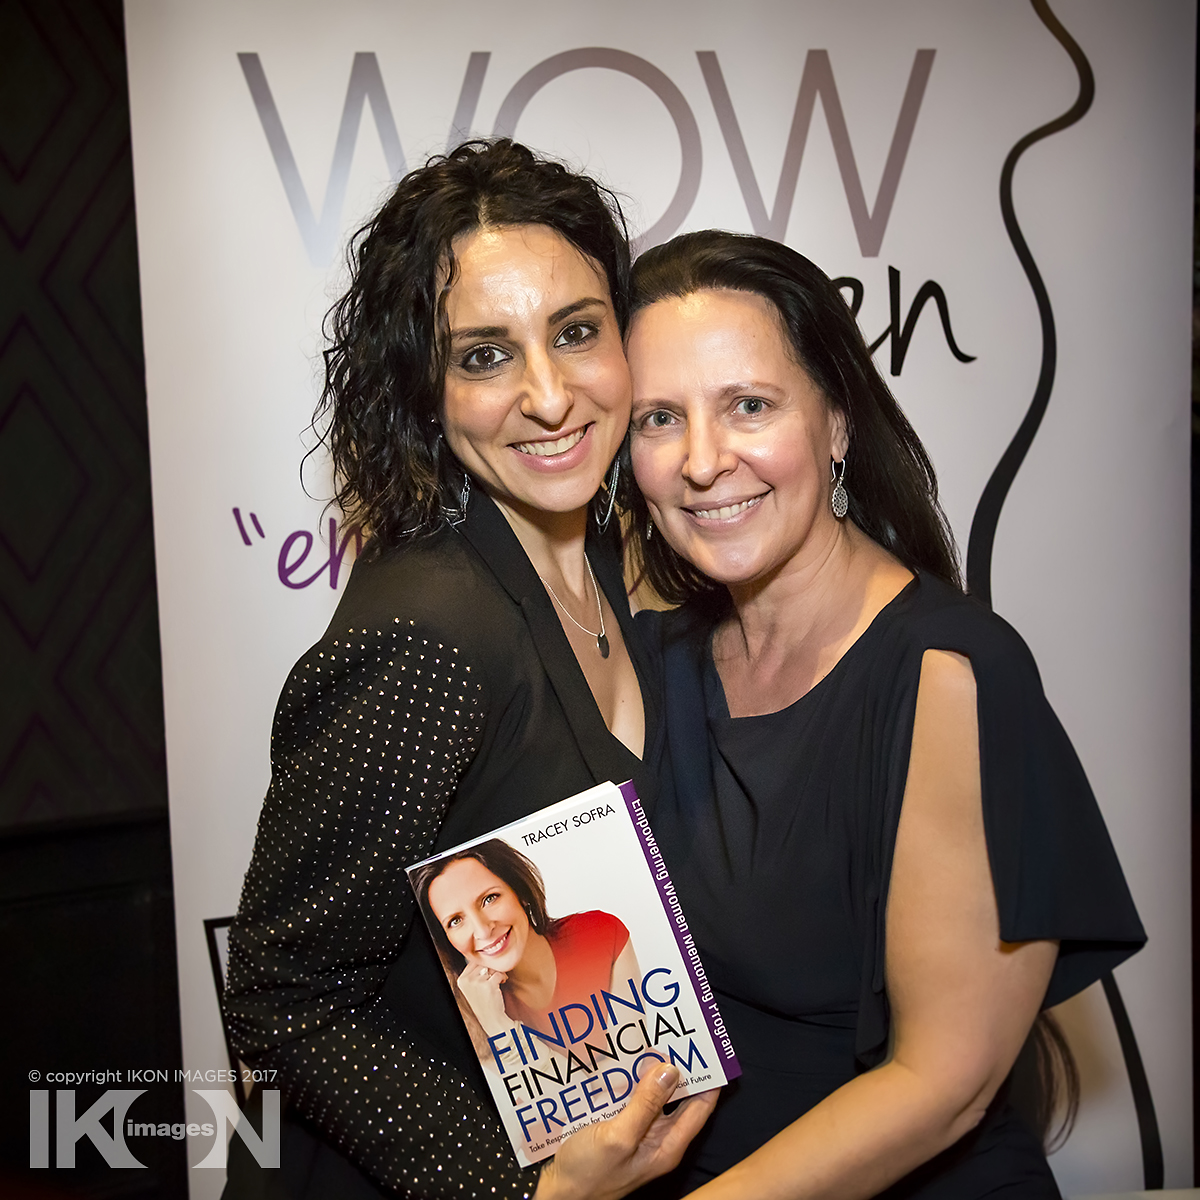 IKON IMAGES, Event Photography, Melbourne